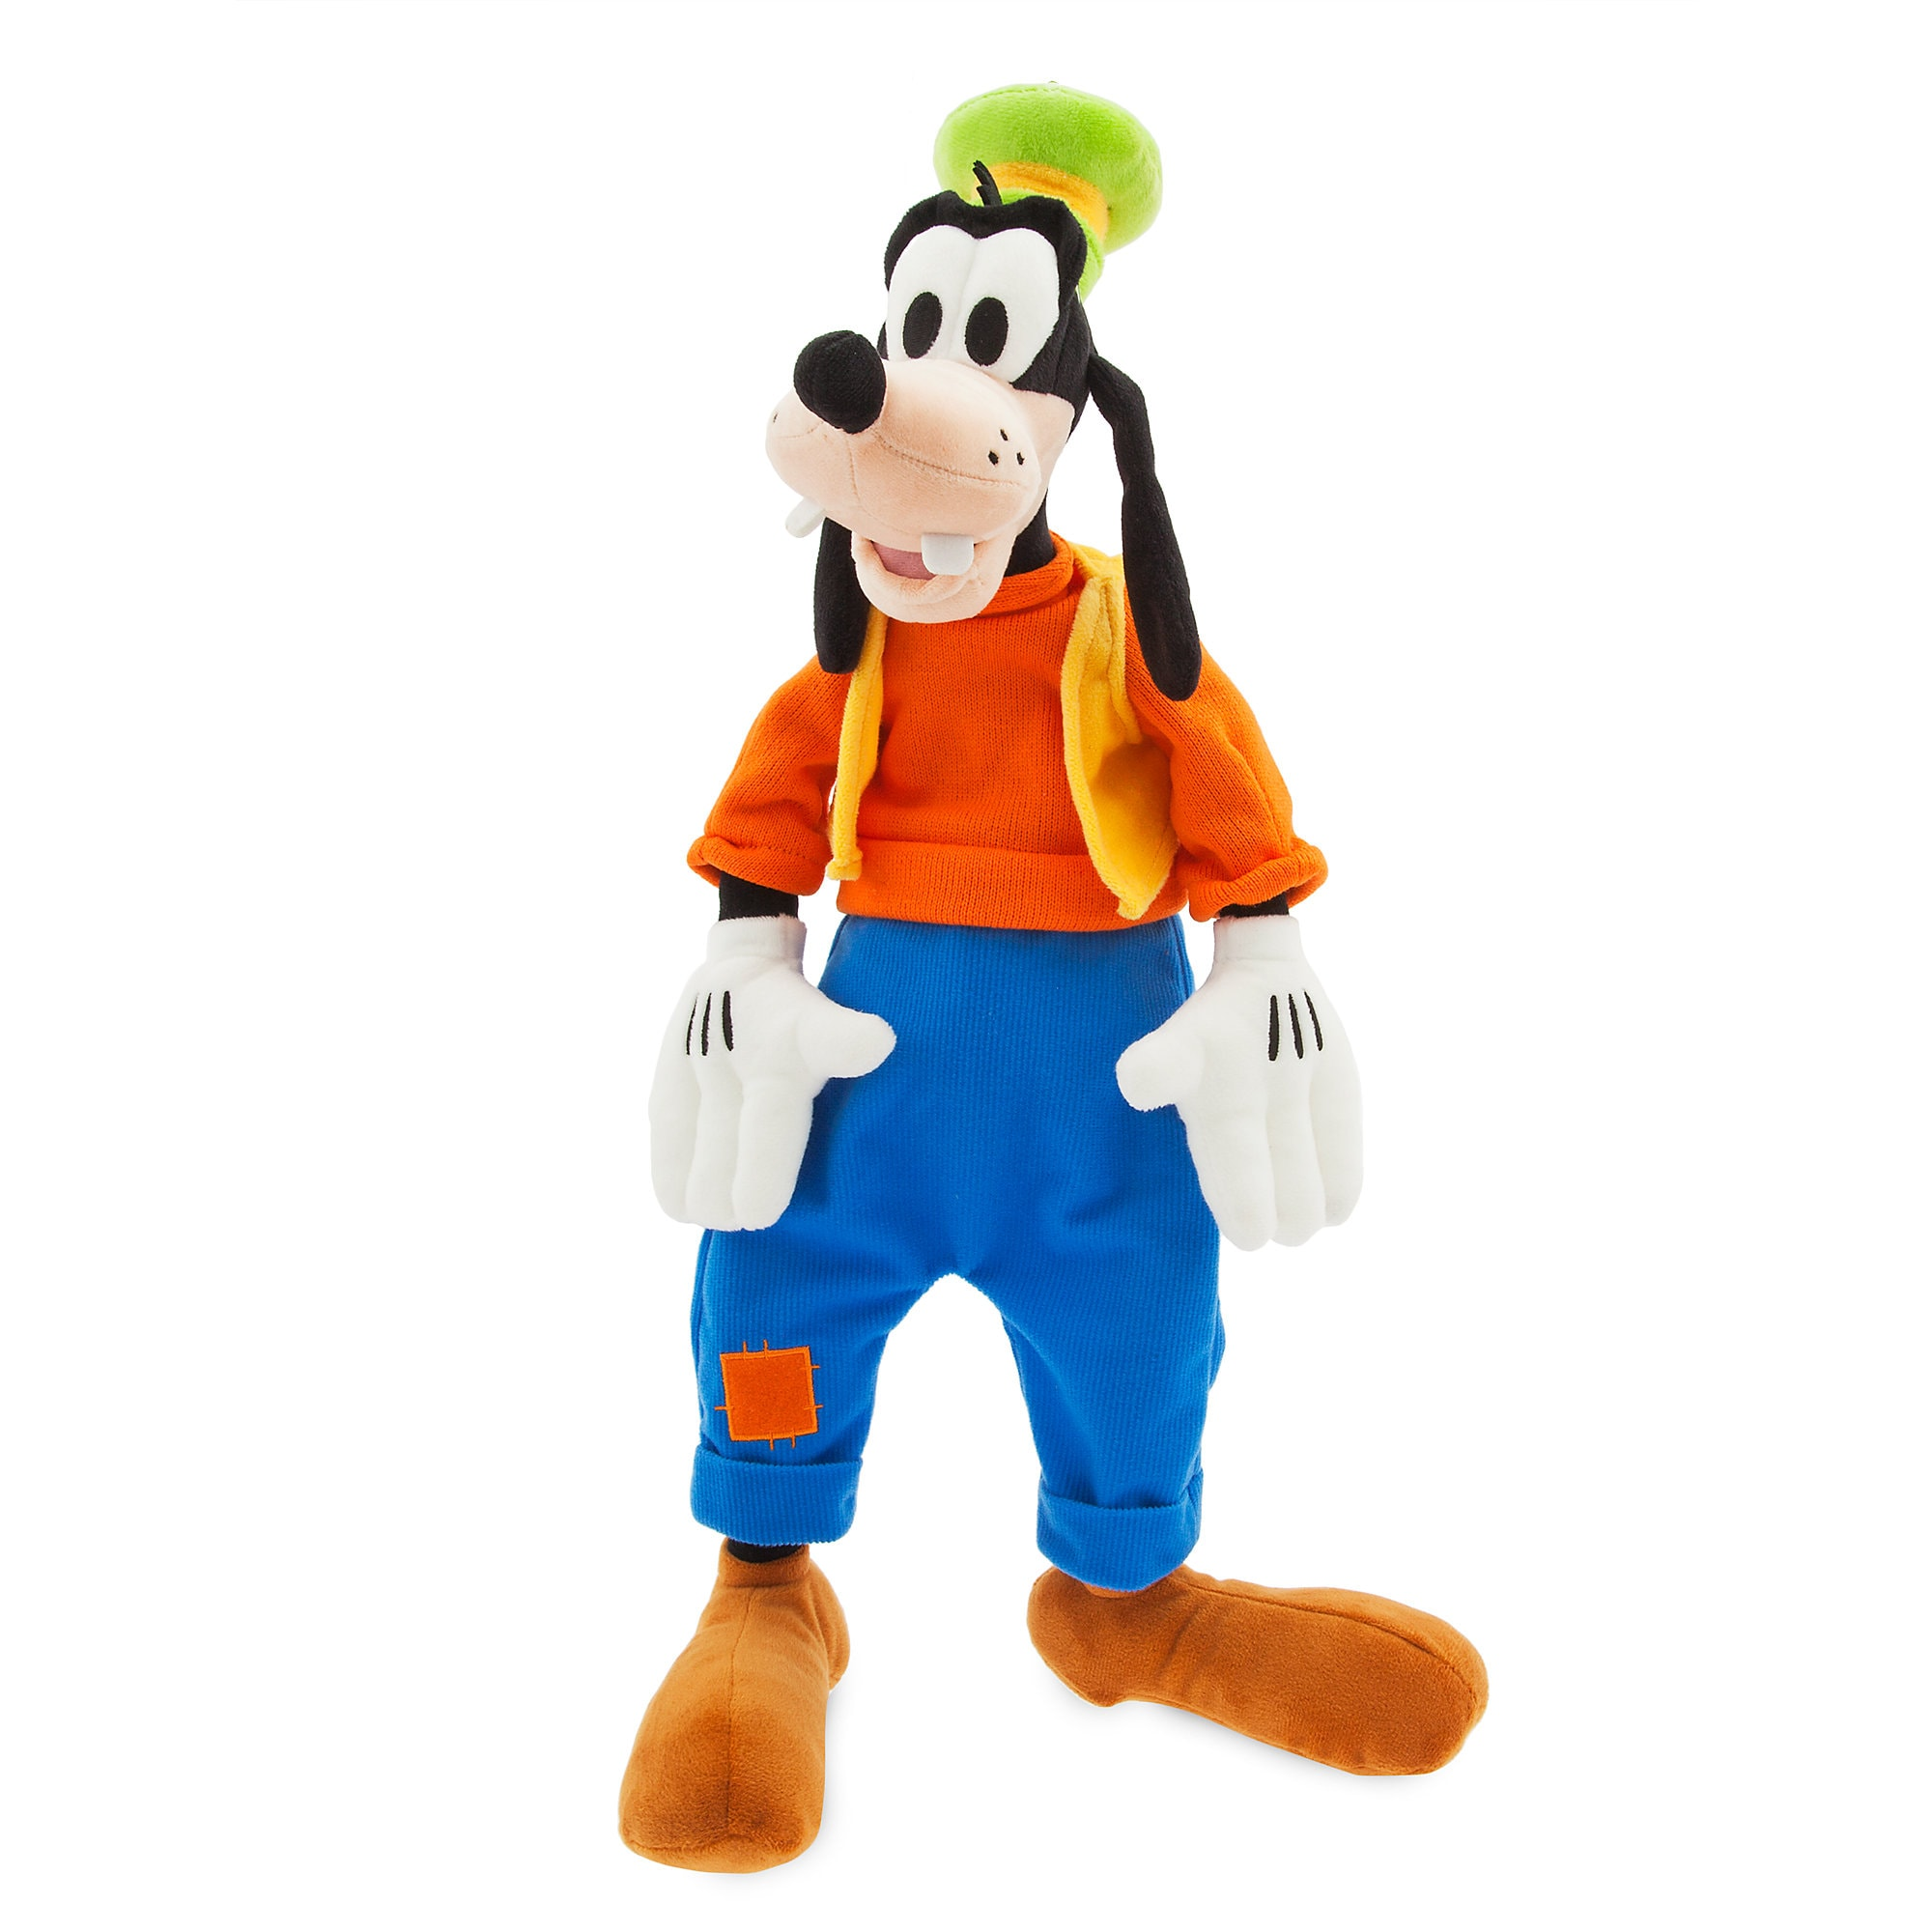 944dbadd4a7 Goofy Plush - Medium - 20   - Personalizable